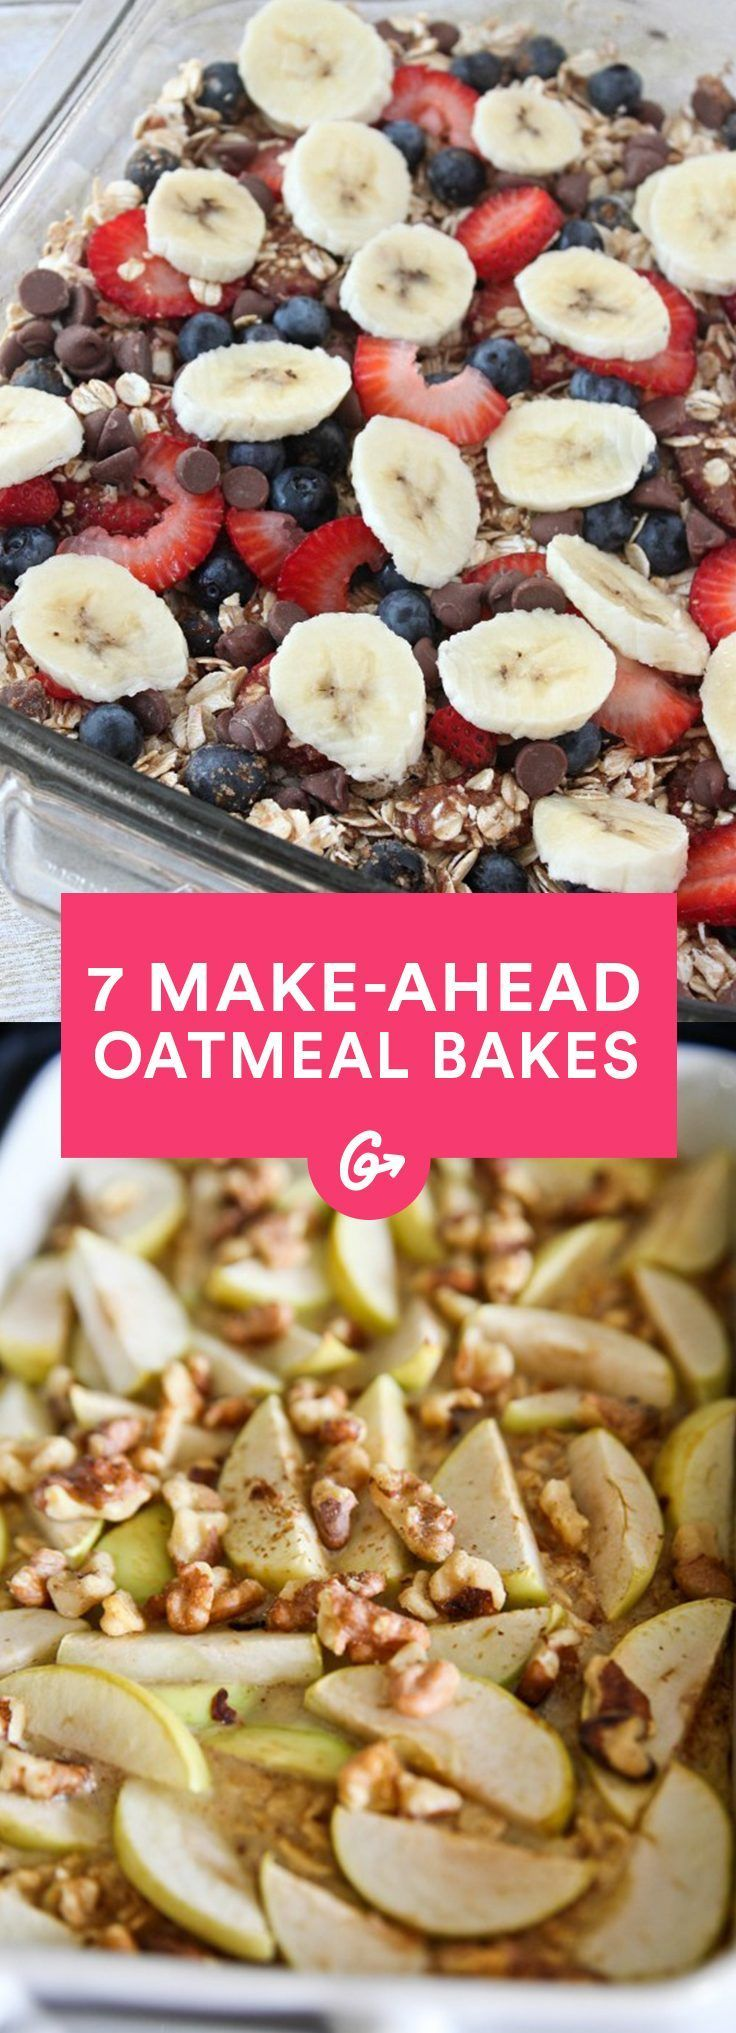 Whip up any one of these, and you've got breakfast covered for the week.  #baked #breakfast #casserole http://greatist.stfi.re/eat/make-ahead-oatmeal-bakes